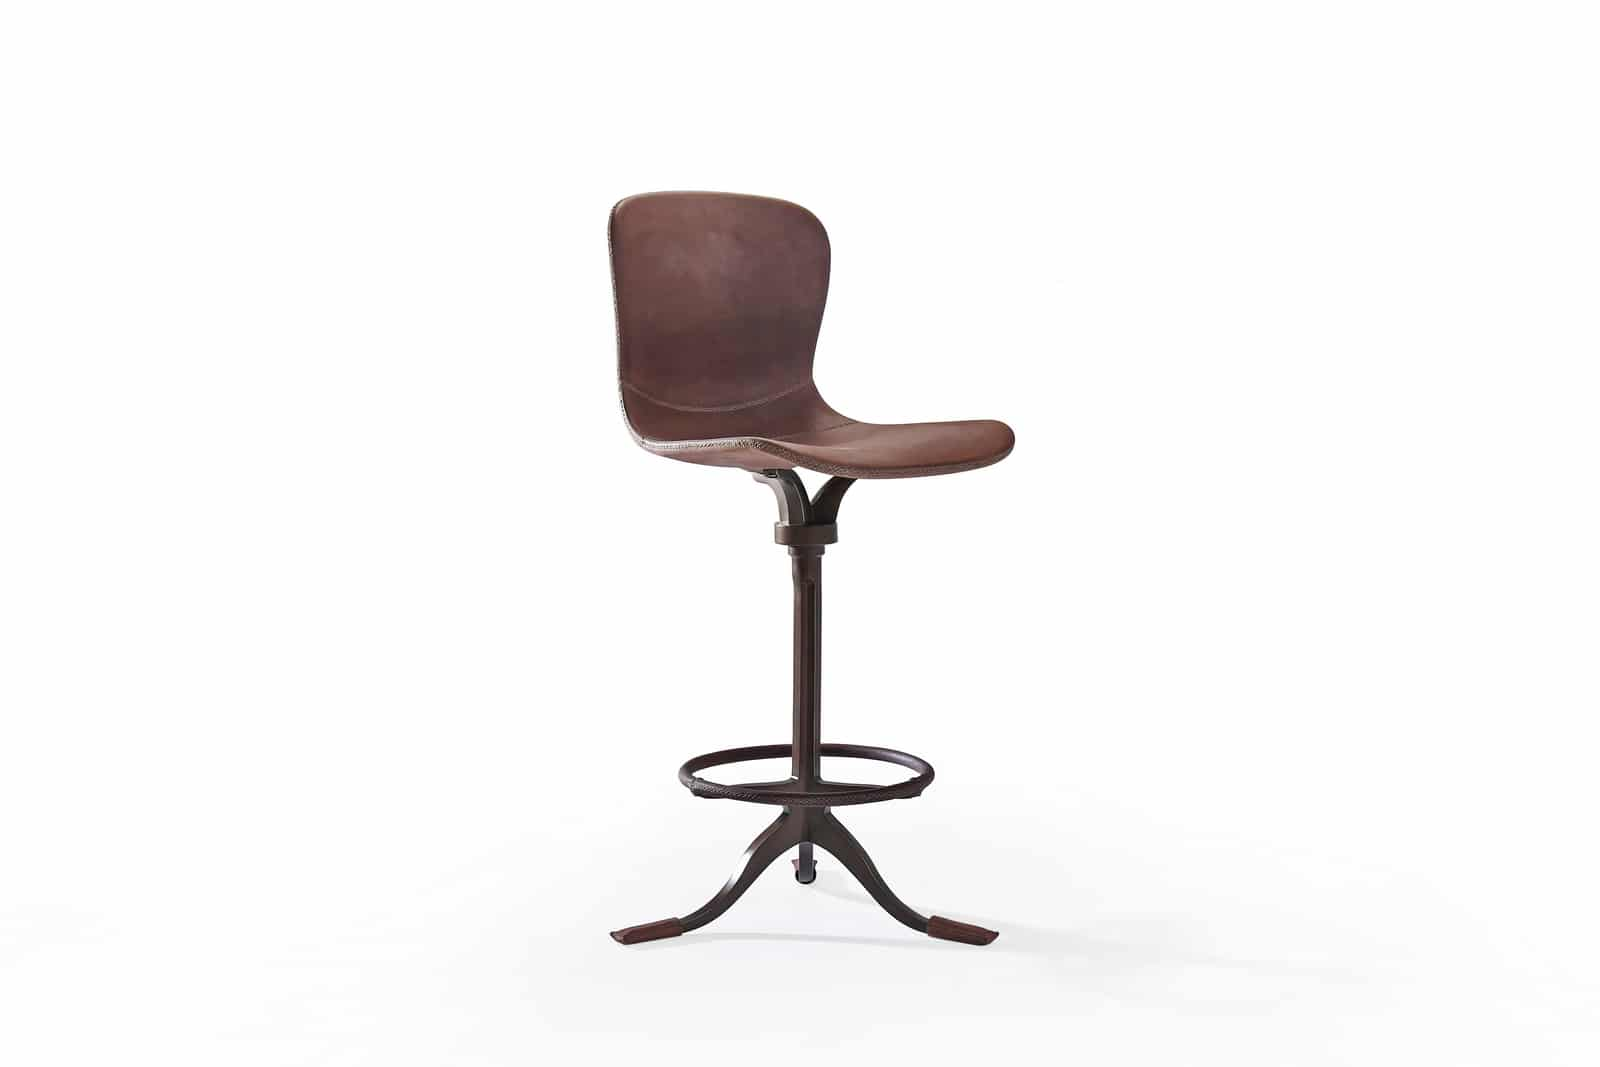 PTendercool-Chairs-PT473(x3)-BS3-DB-210818-06